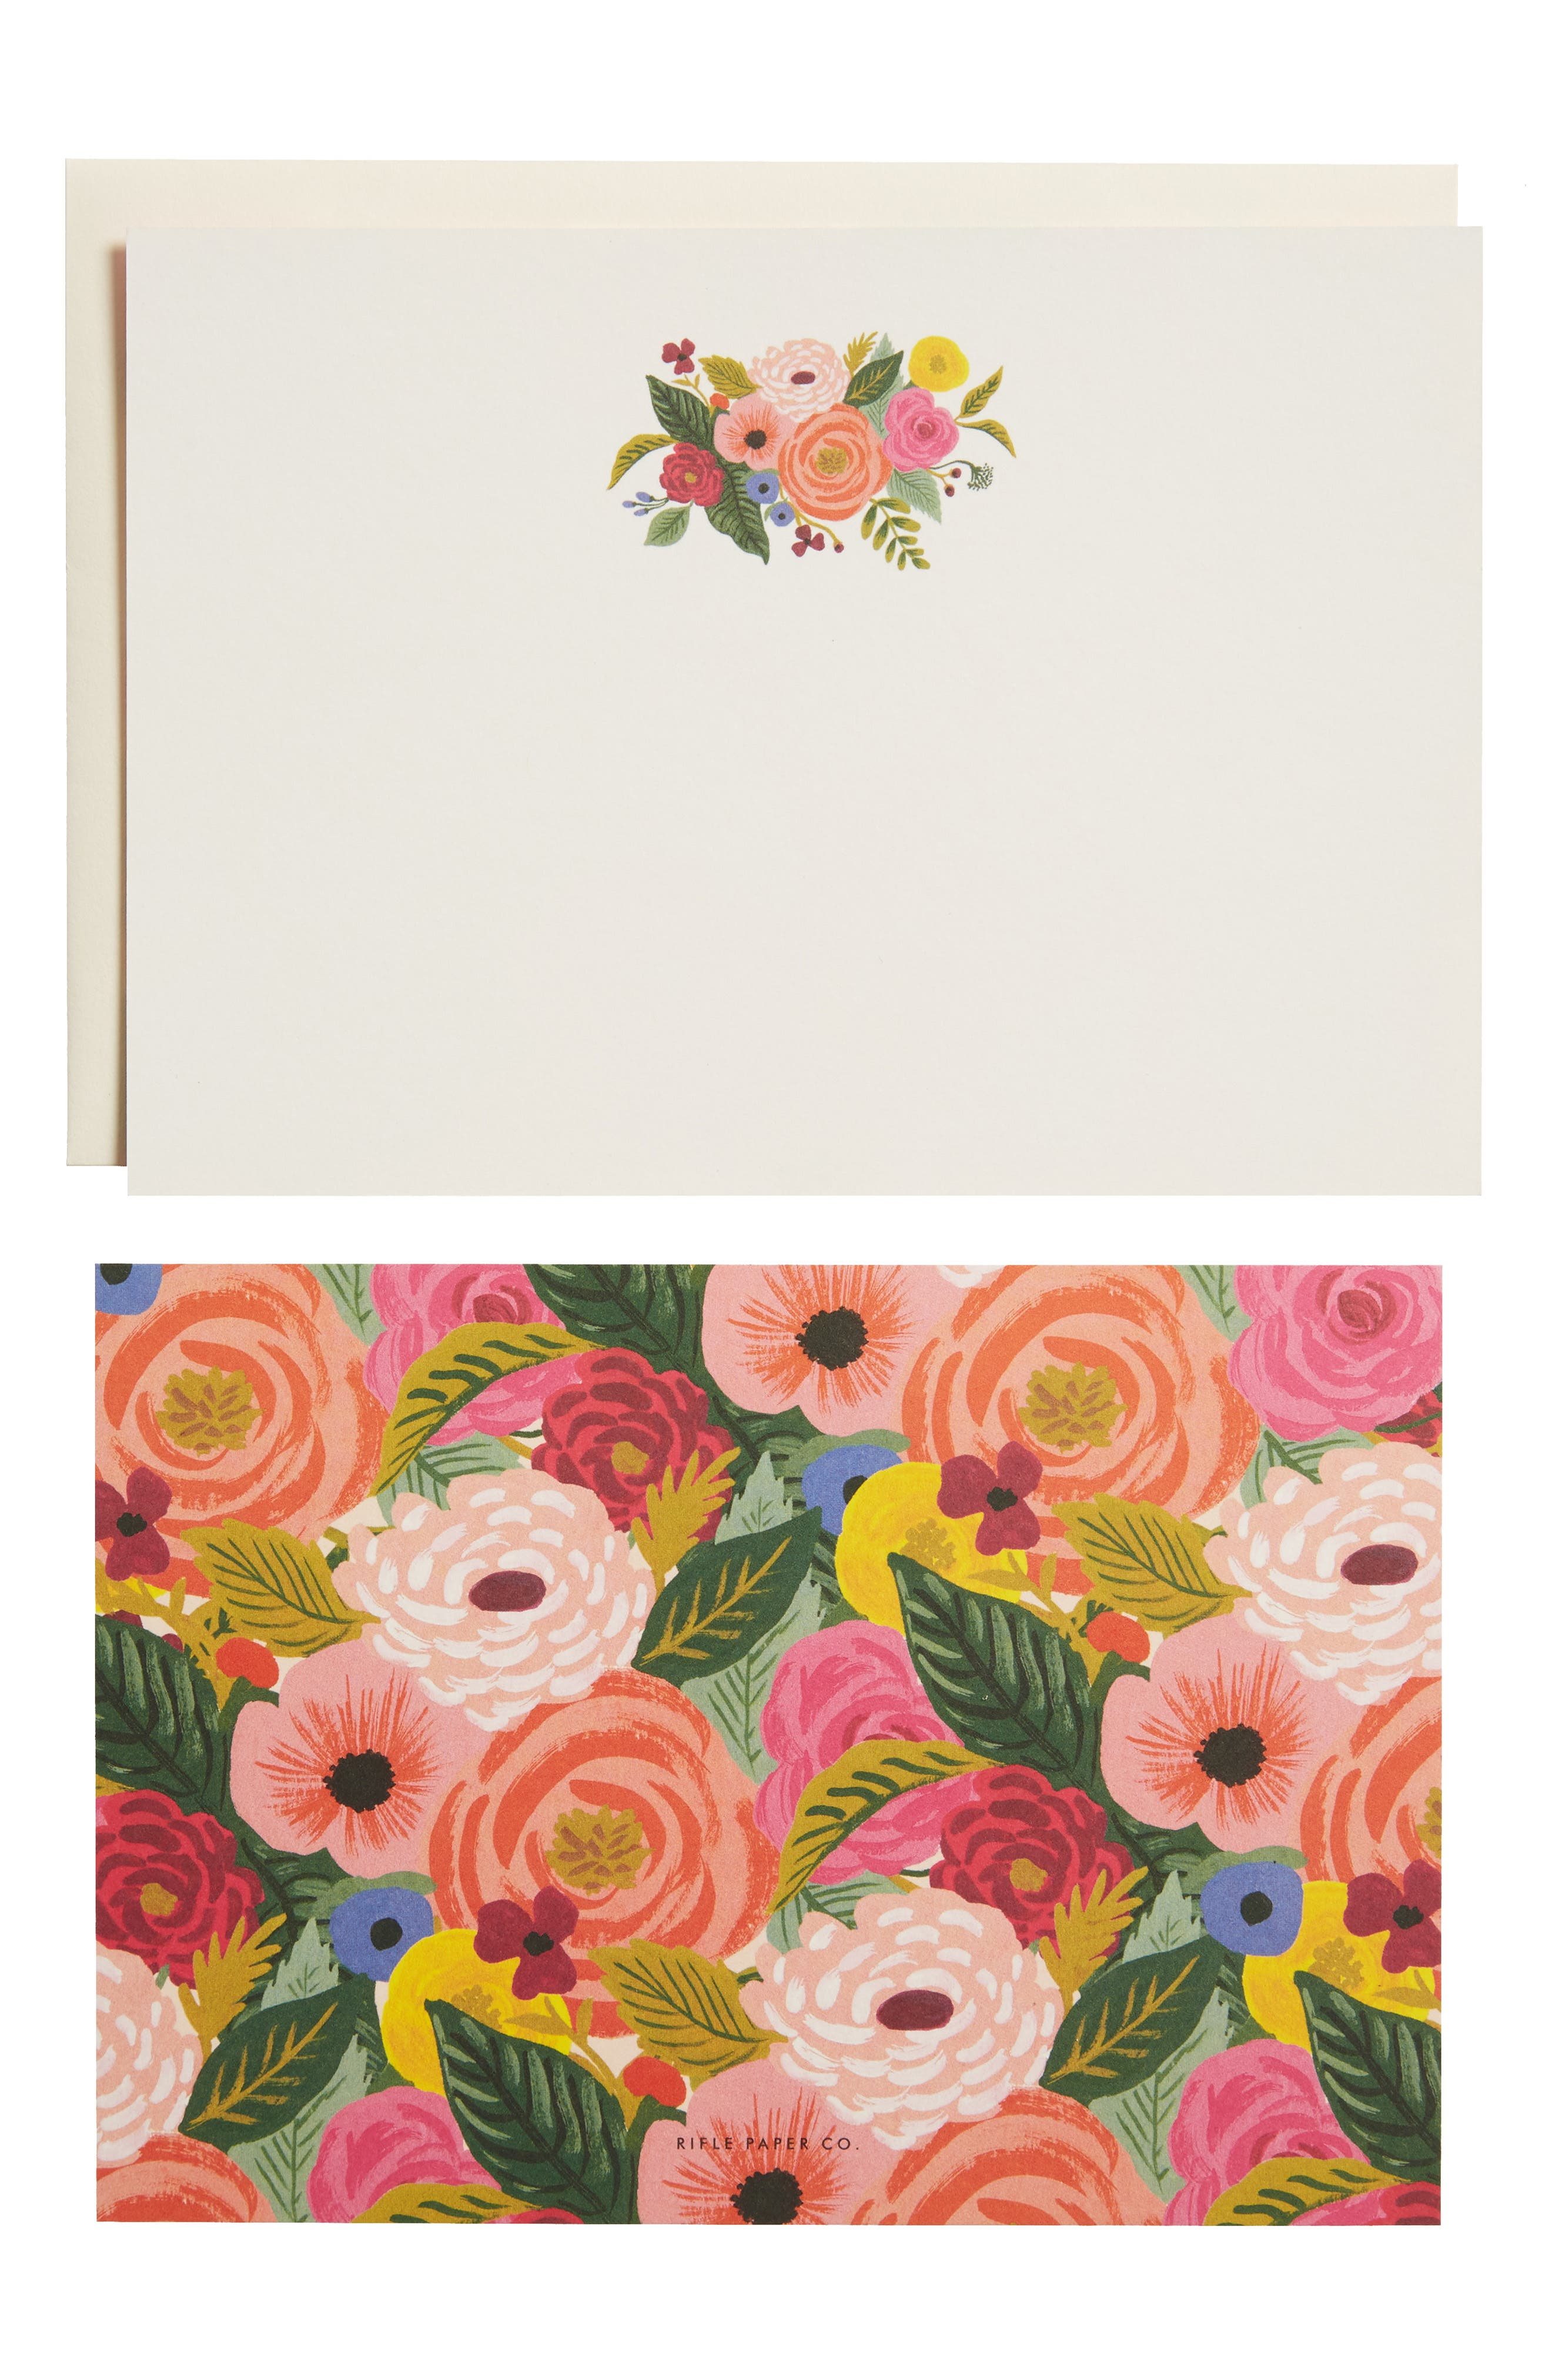 Main Image - Rifle Paper Co. Juliet Rose Social Stationery 12-Pack Note Cards & Envelopes